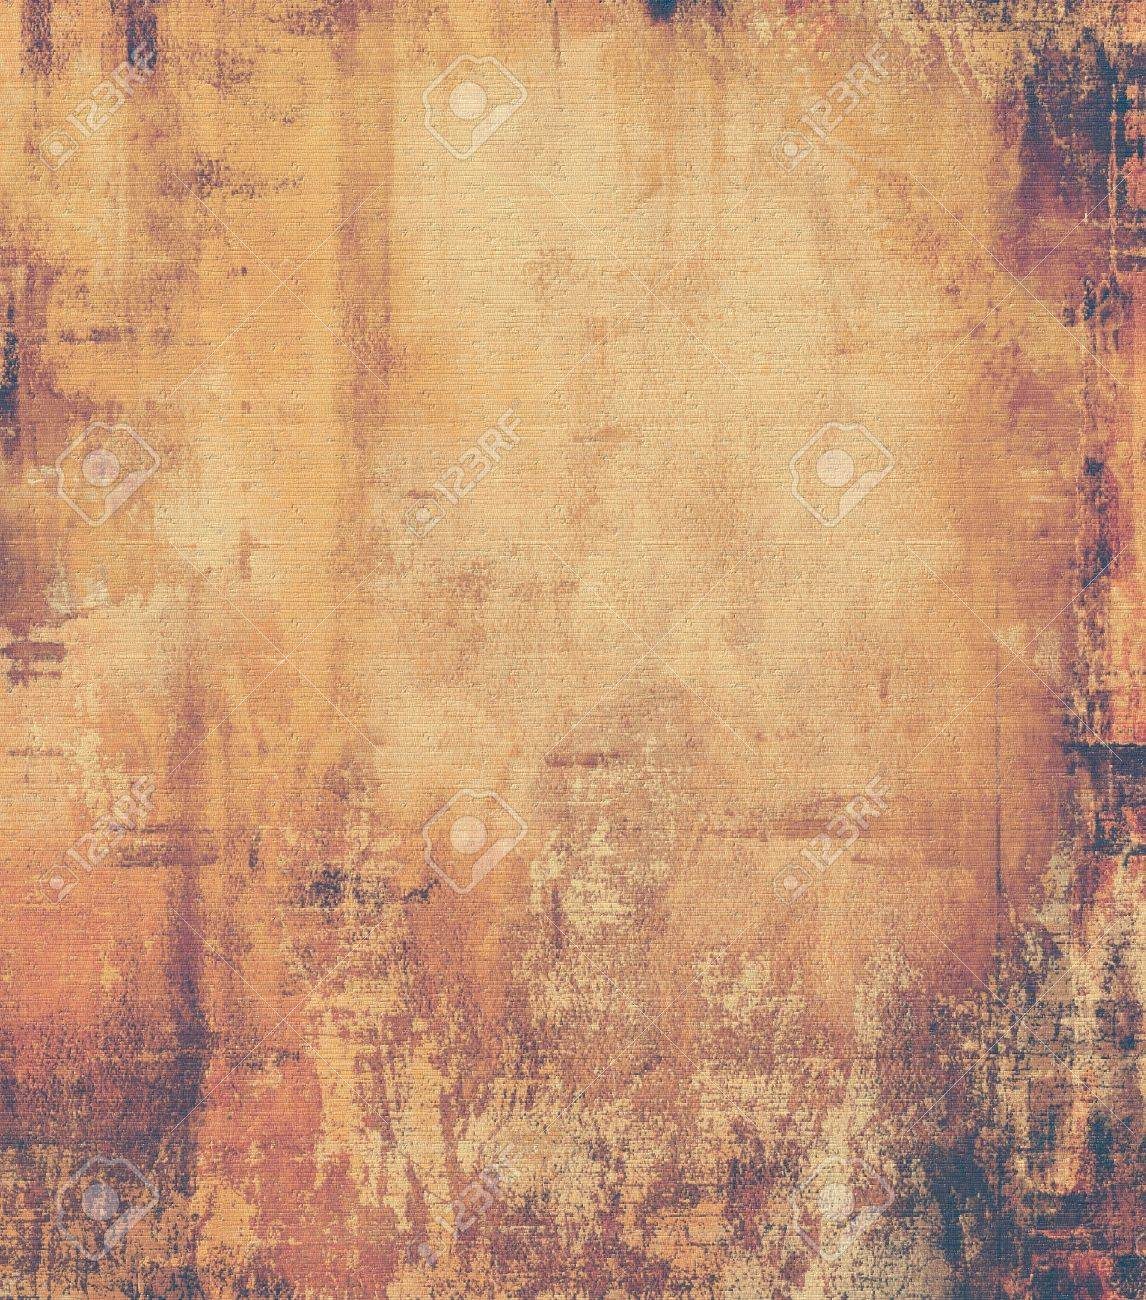 Grunge Texture, Distressed Background. With Different Color Patterns ...